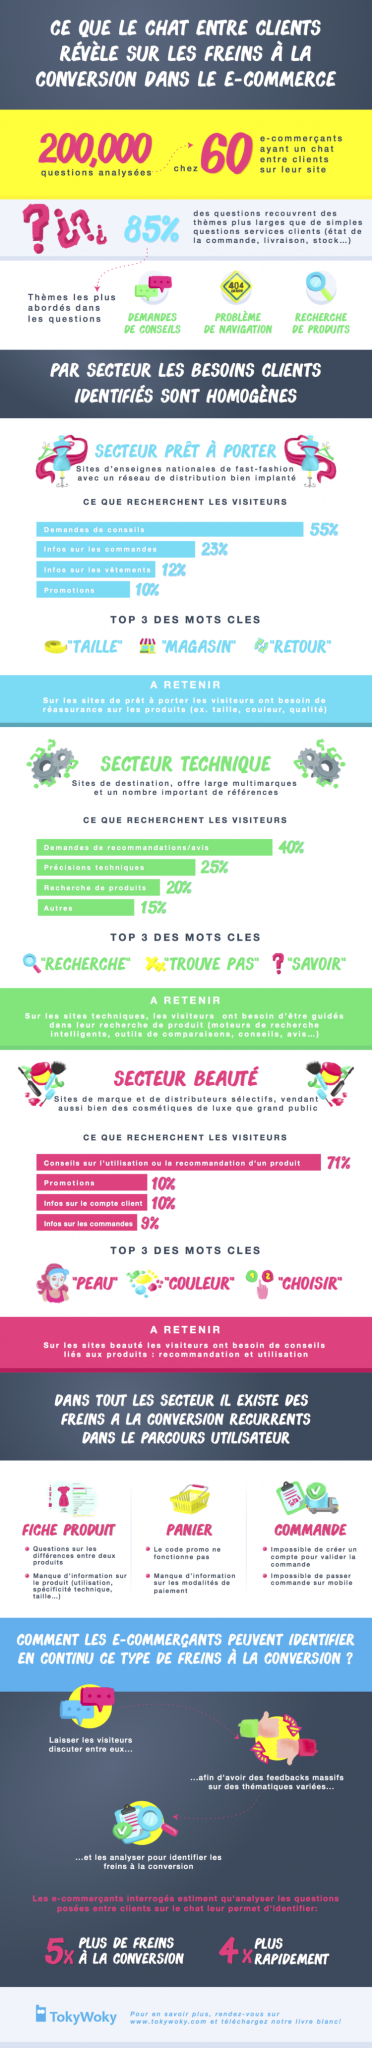 Infographie-conversion-ecommercepng